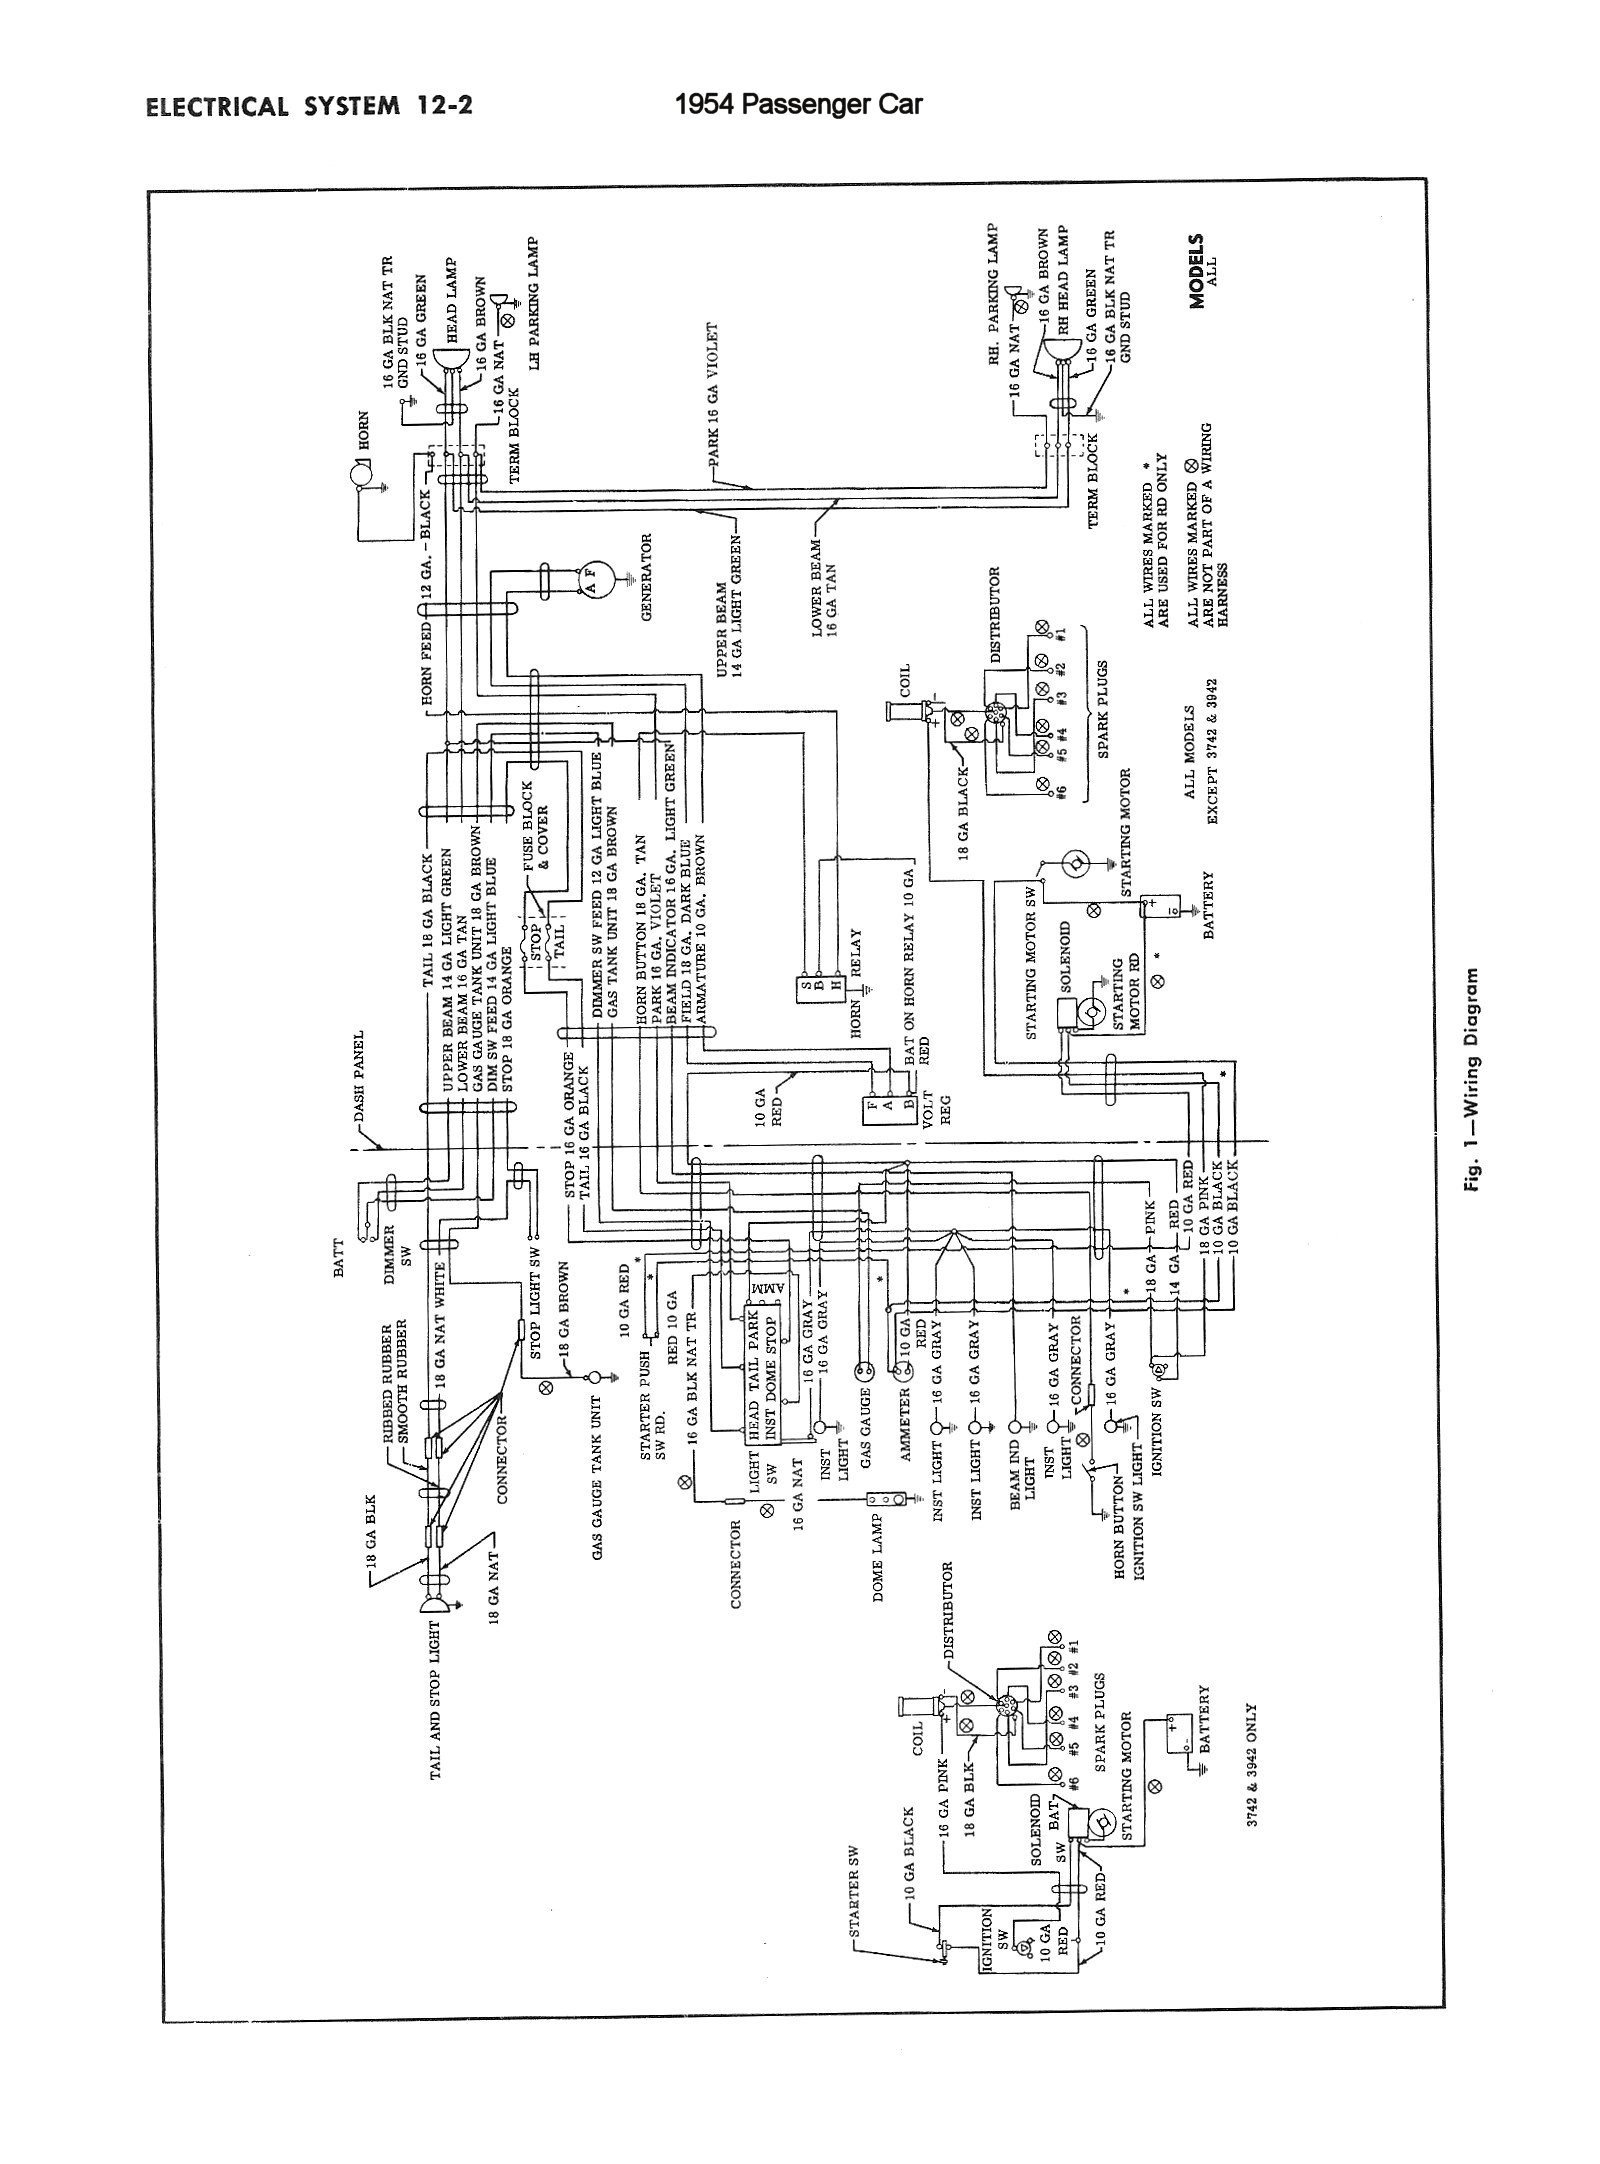 2007 Honda Ridgeline Air Conditioner Wiring Diagram